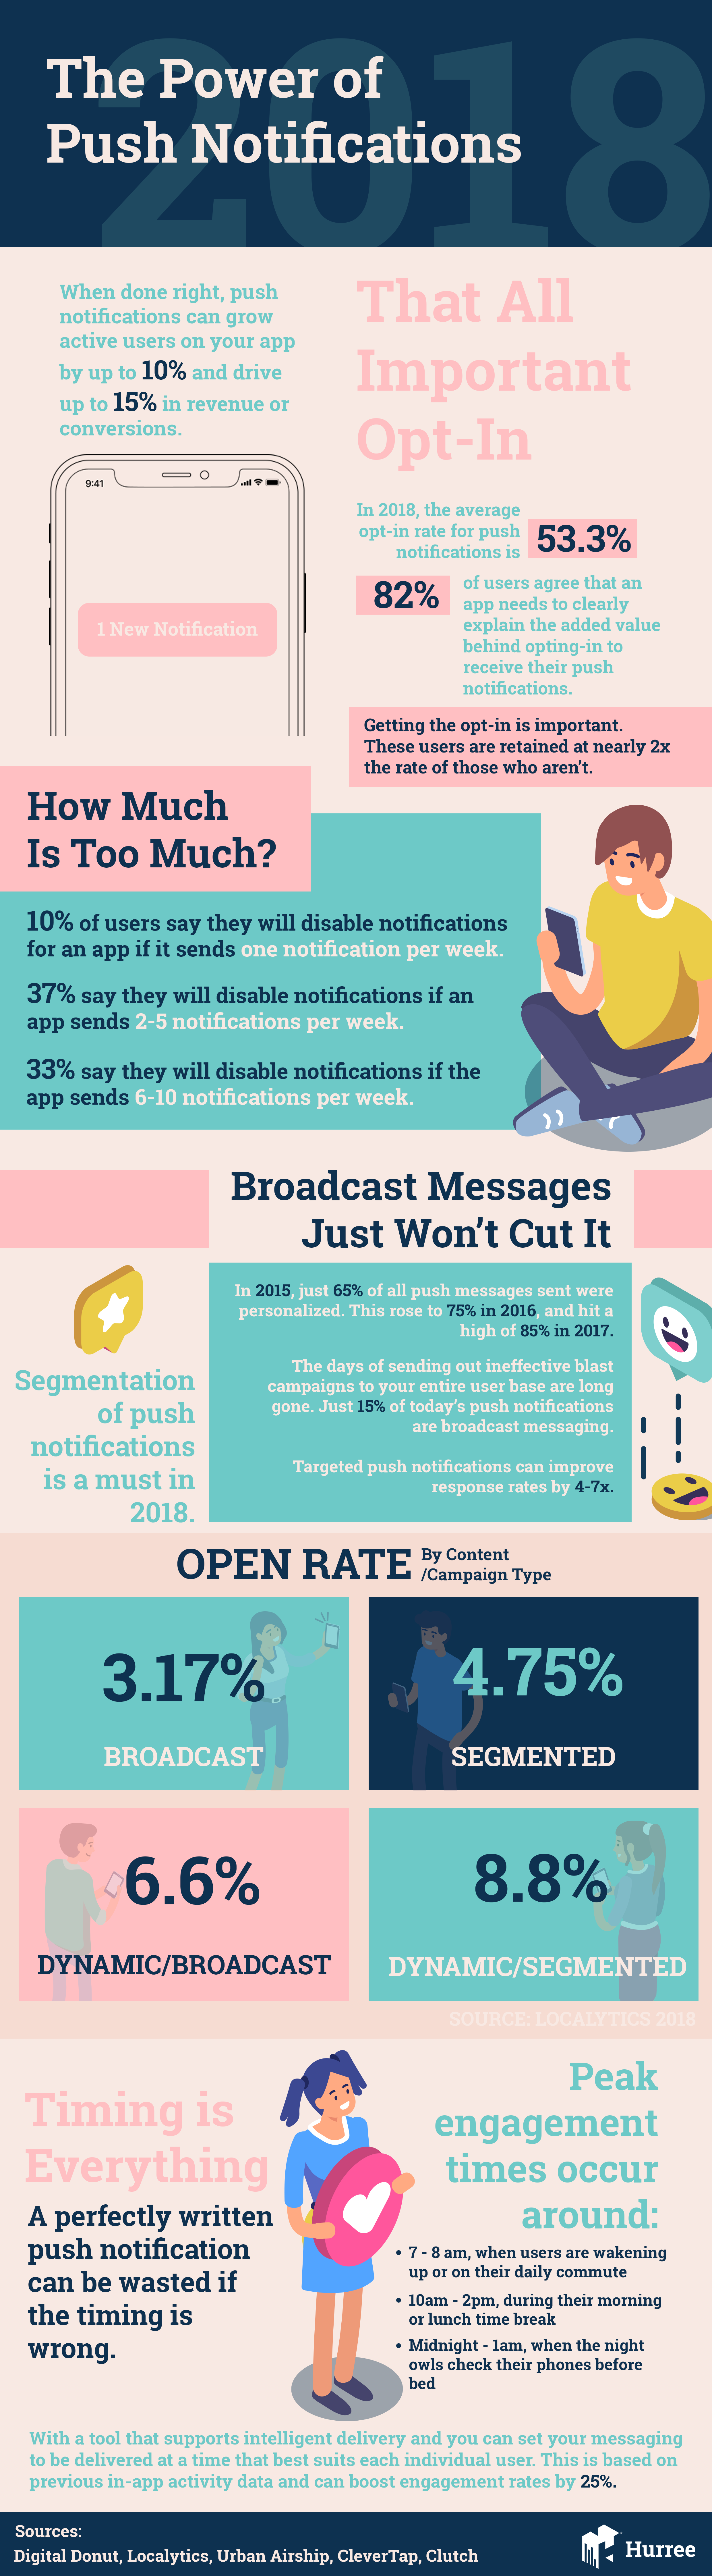 Push-Notification-Power-2018-Infographic